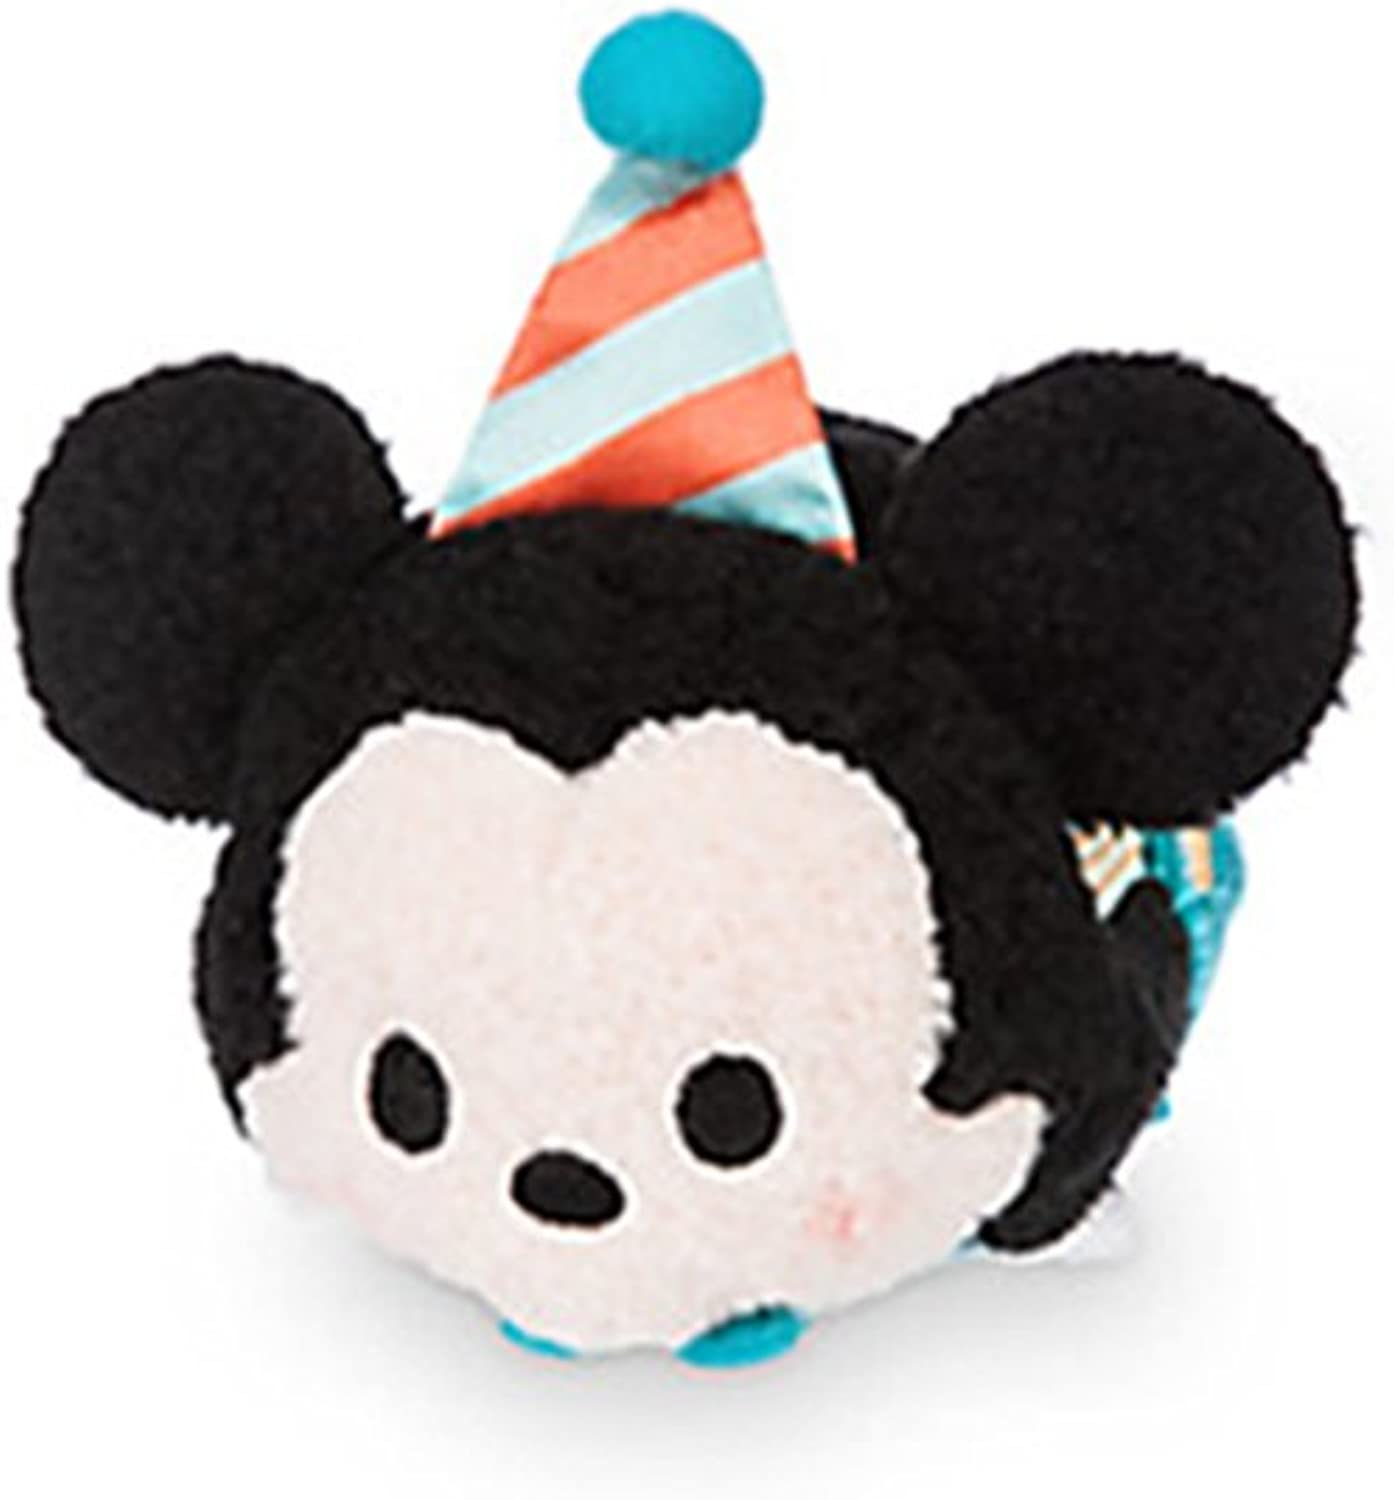 Disney Mickey Mouse Birthday 2016 Tsum Tsum Plush  Mini  3 1 2 by Disney